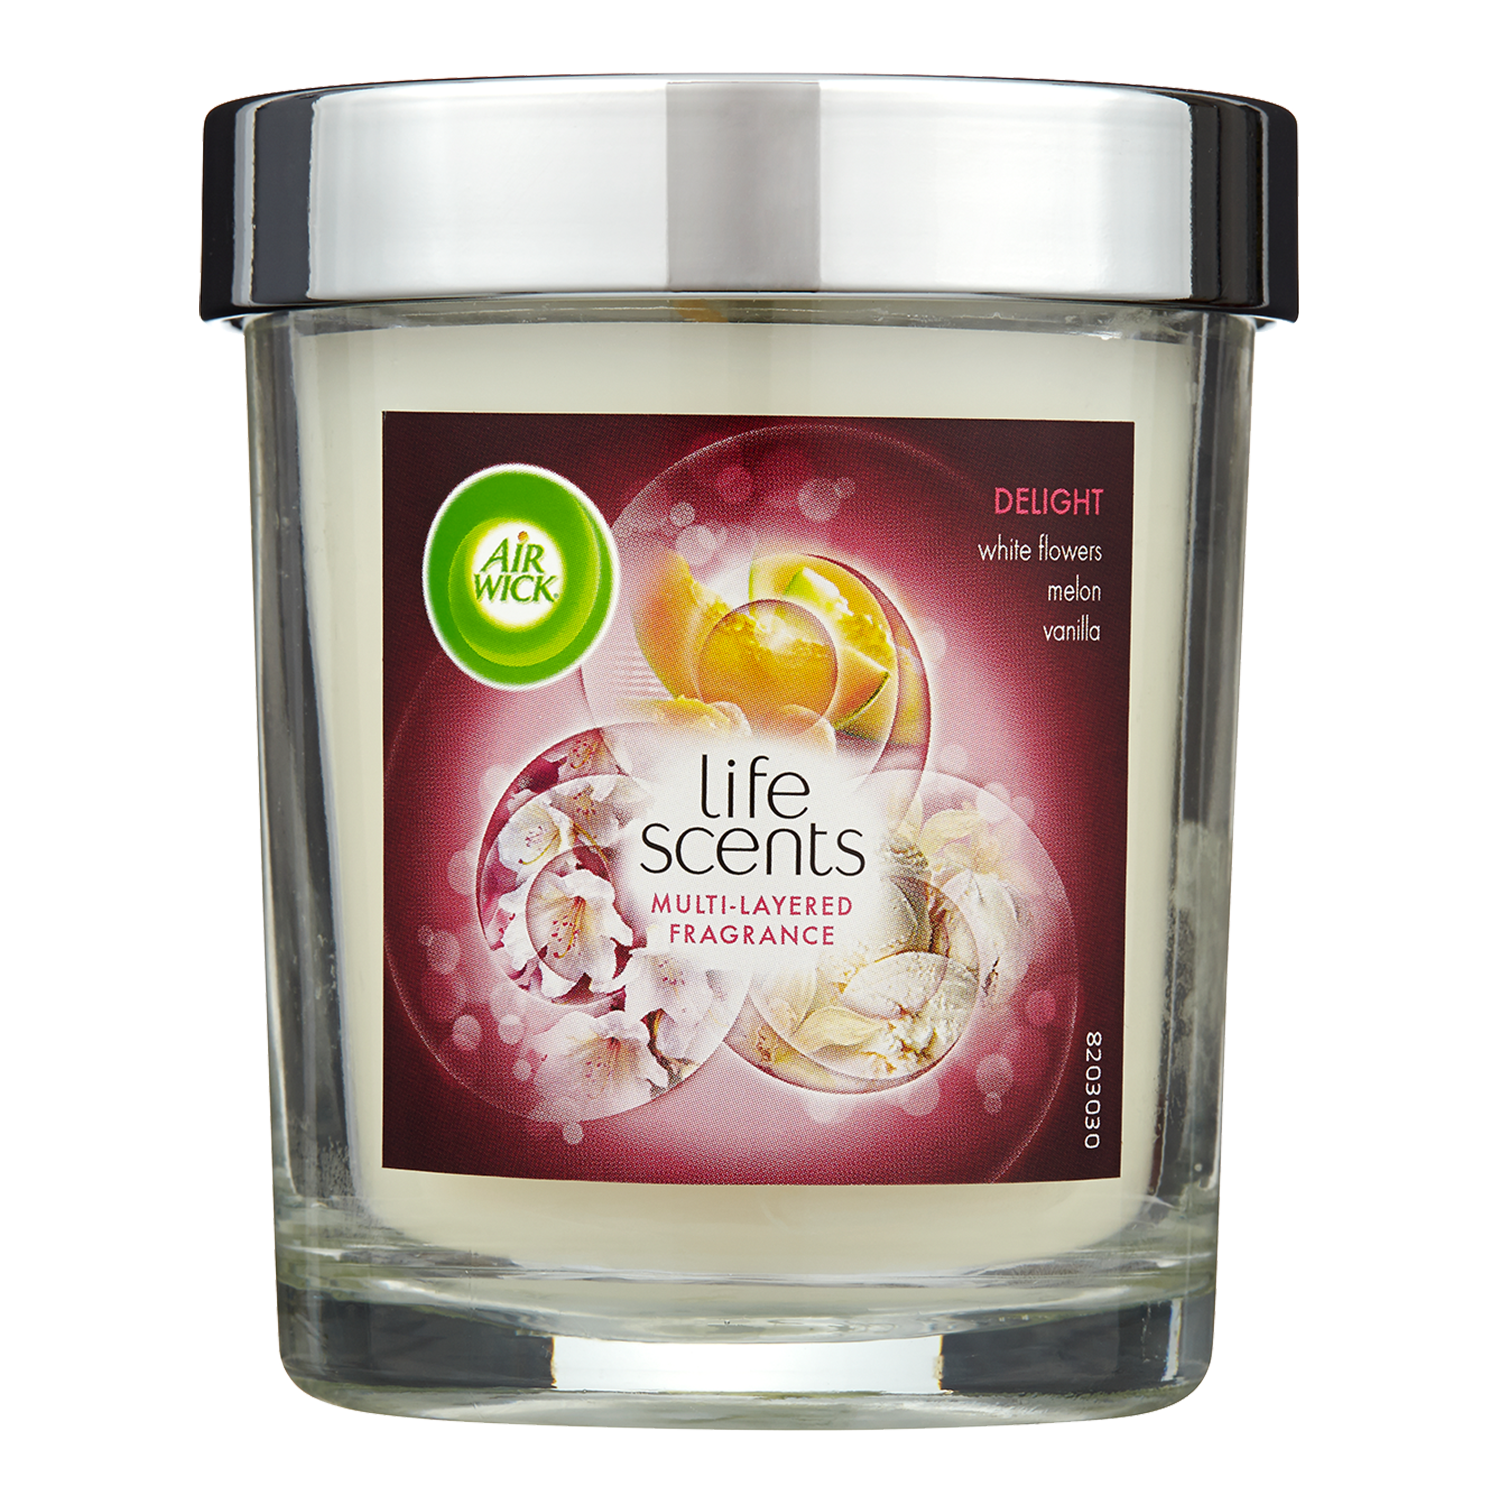 Air Wick Life Scents Delight